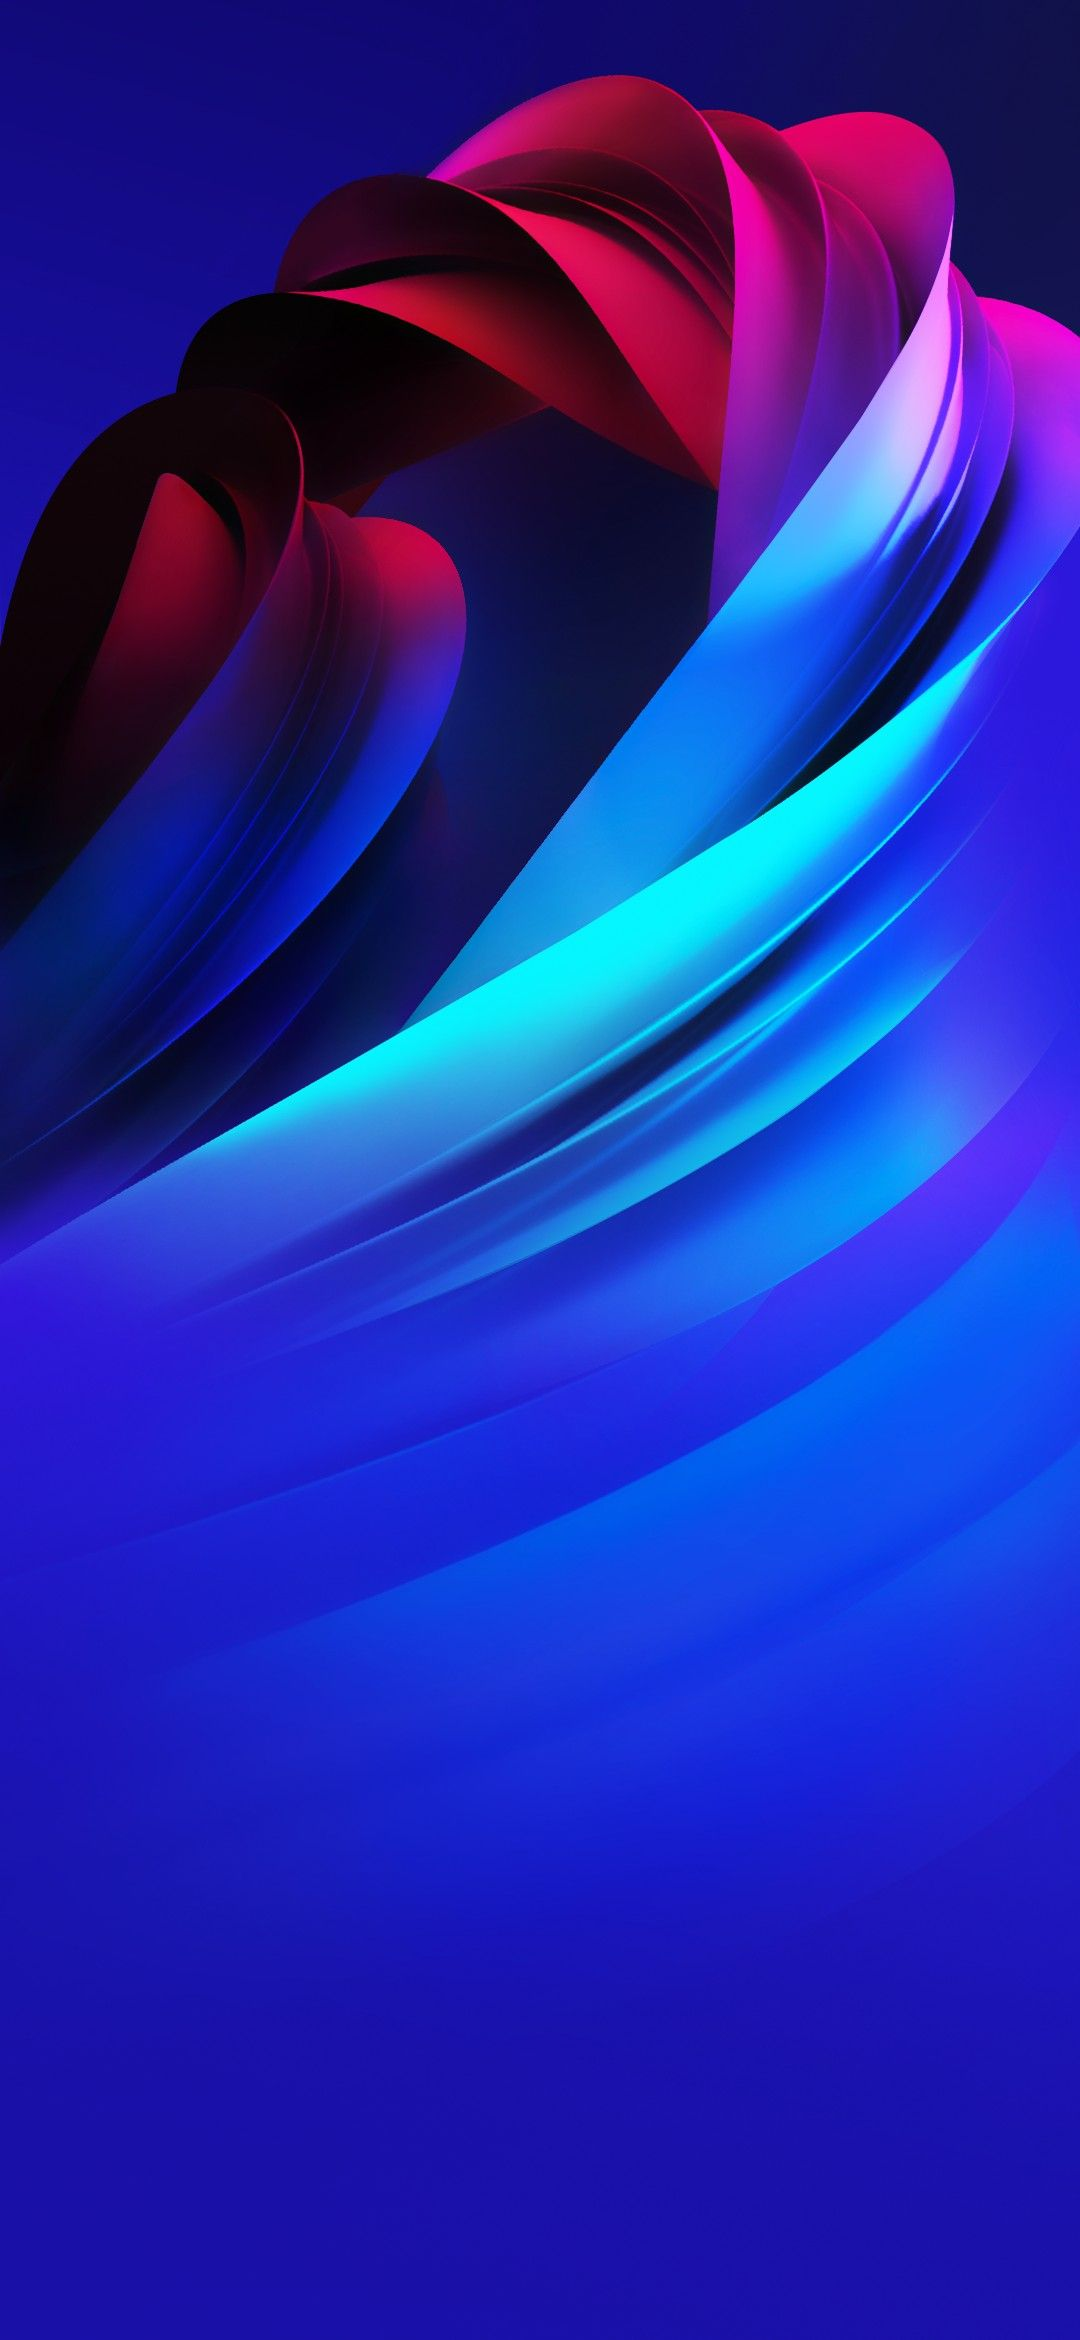 Vivo Next Dual Display Abstract Amoled Liquid Gradient in 1080x2340